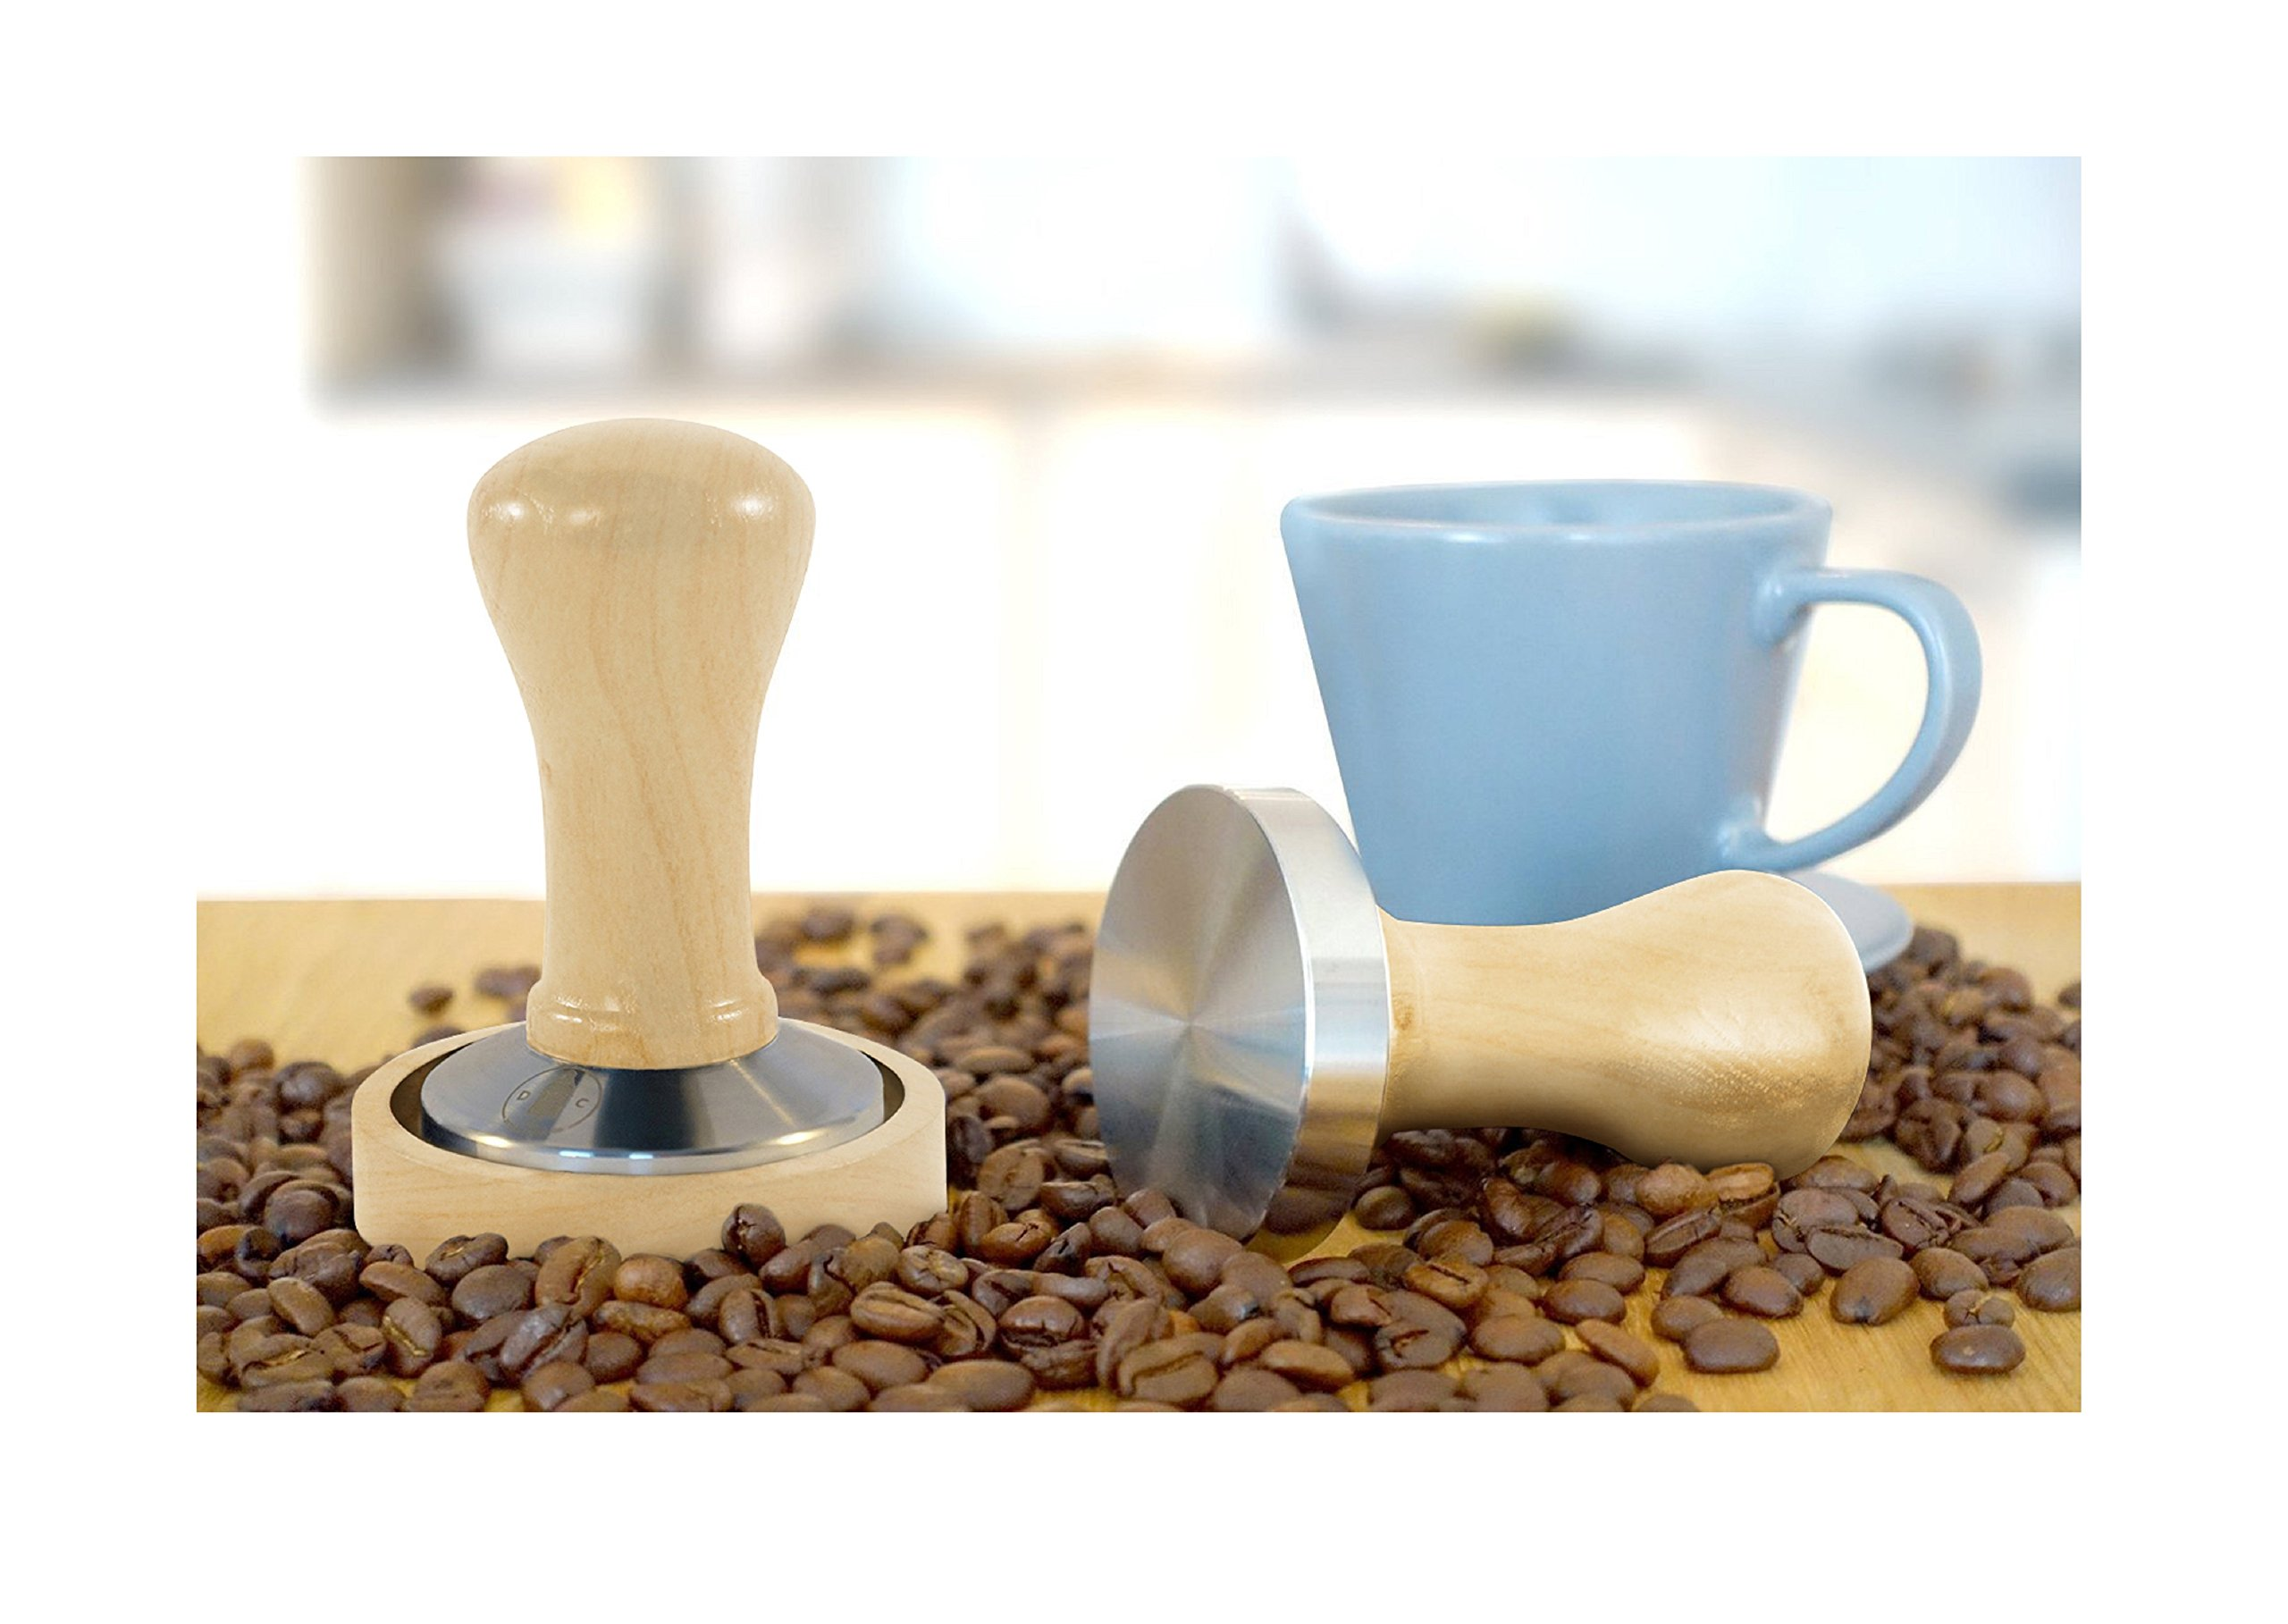 Coffee Tamper 58 Dutch Coffee Co. Premium Design - Espresso Tamper 58mm Stainless Steel Base with Solid Wood Handle & Matching Stand - Barista Tools and Equipment - Latte Pro by Dutch Coffee Co. (Image #7)